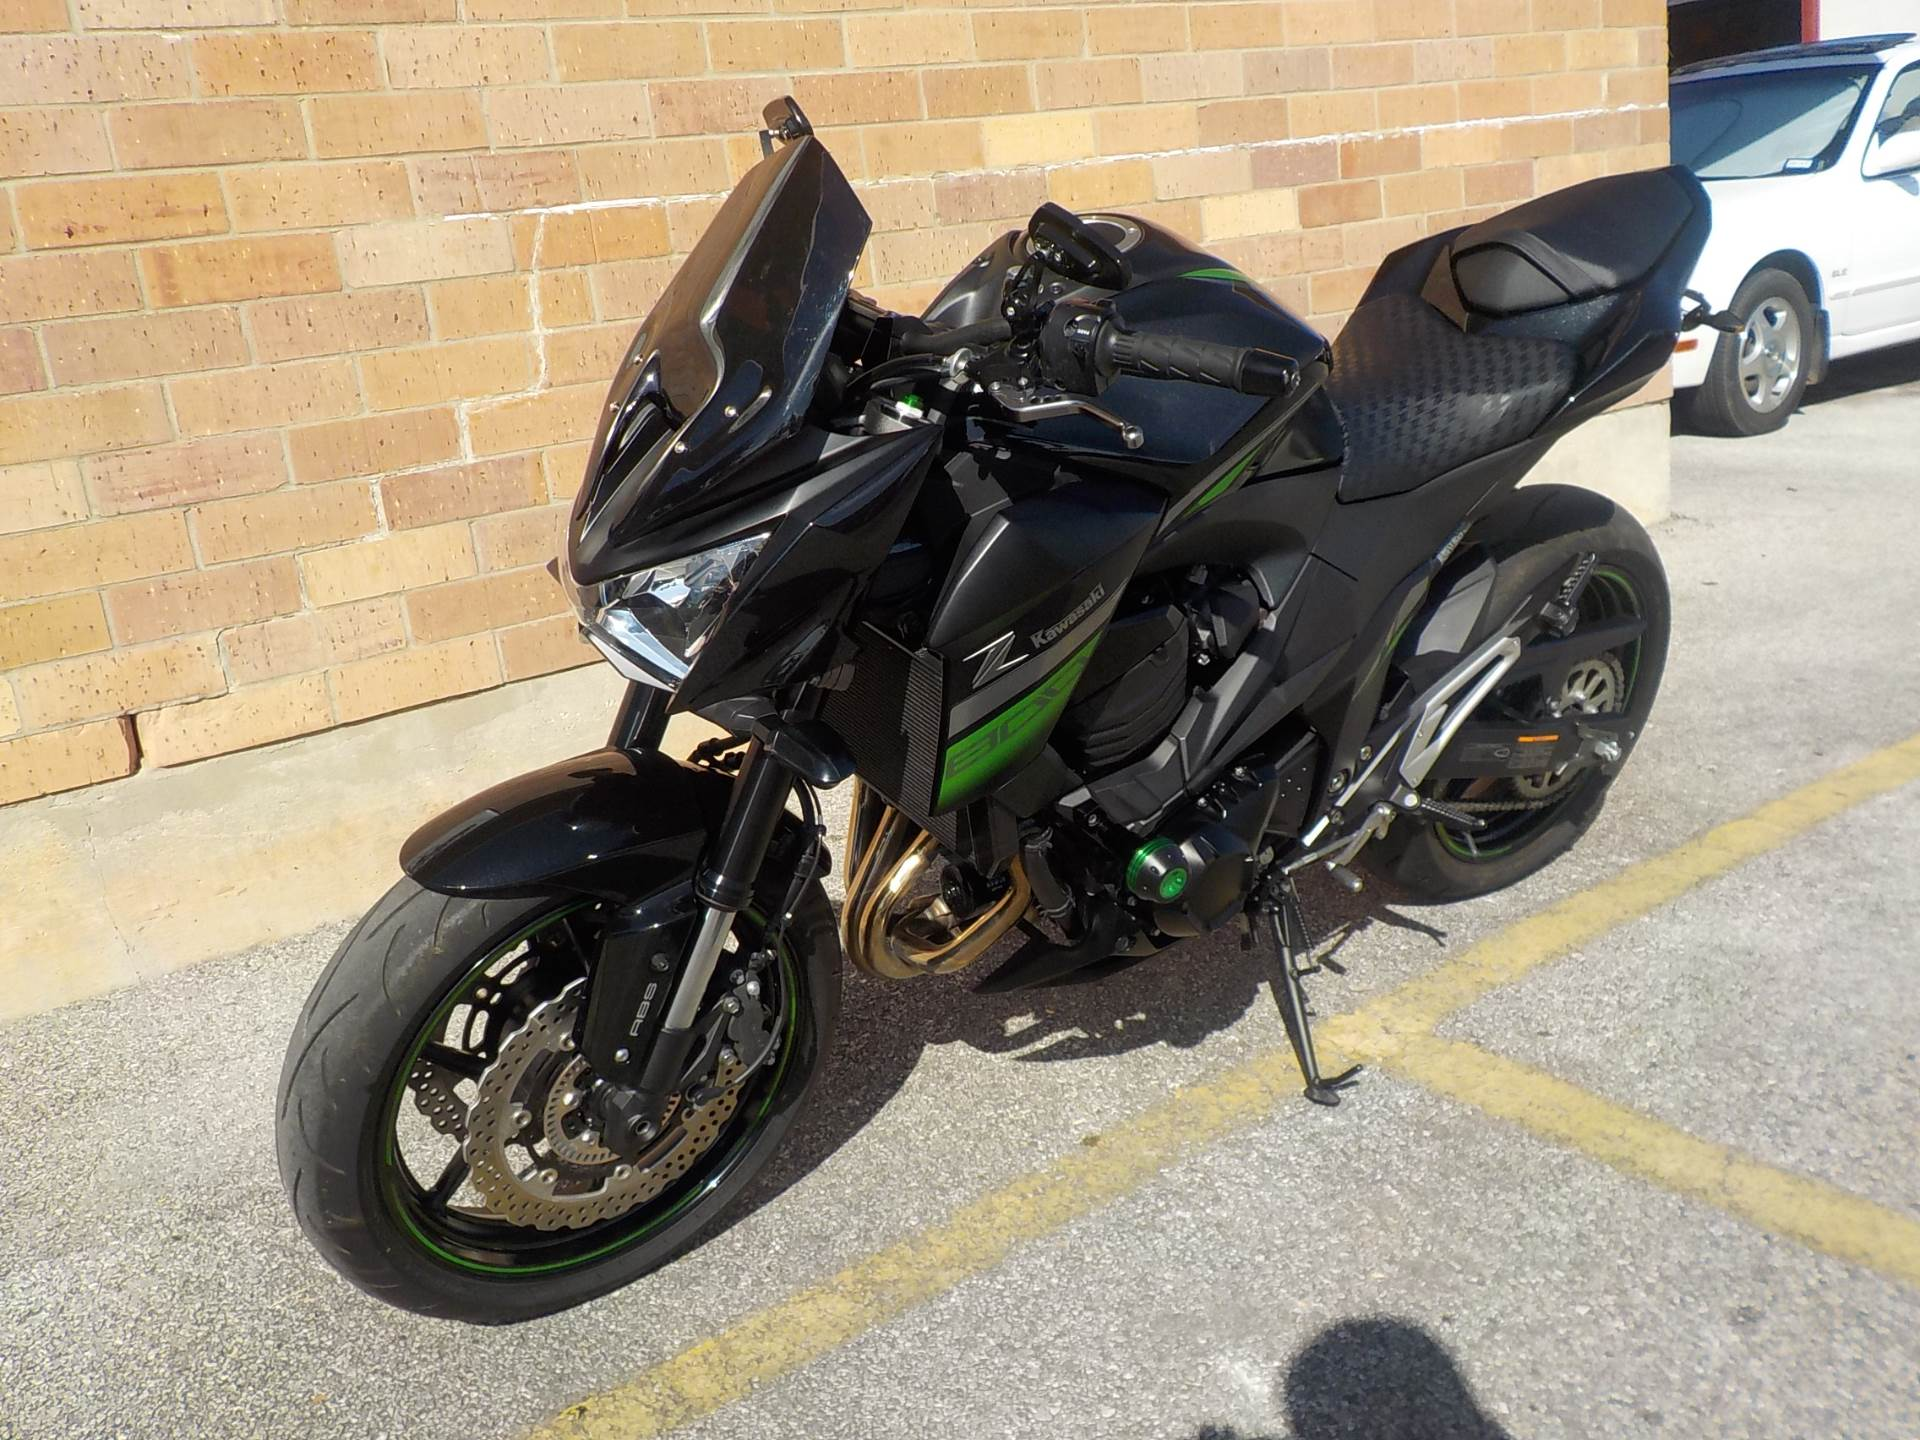 used 2016 kawasaki z800 abs motorcycles in san antonio, tx | stock